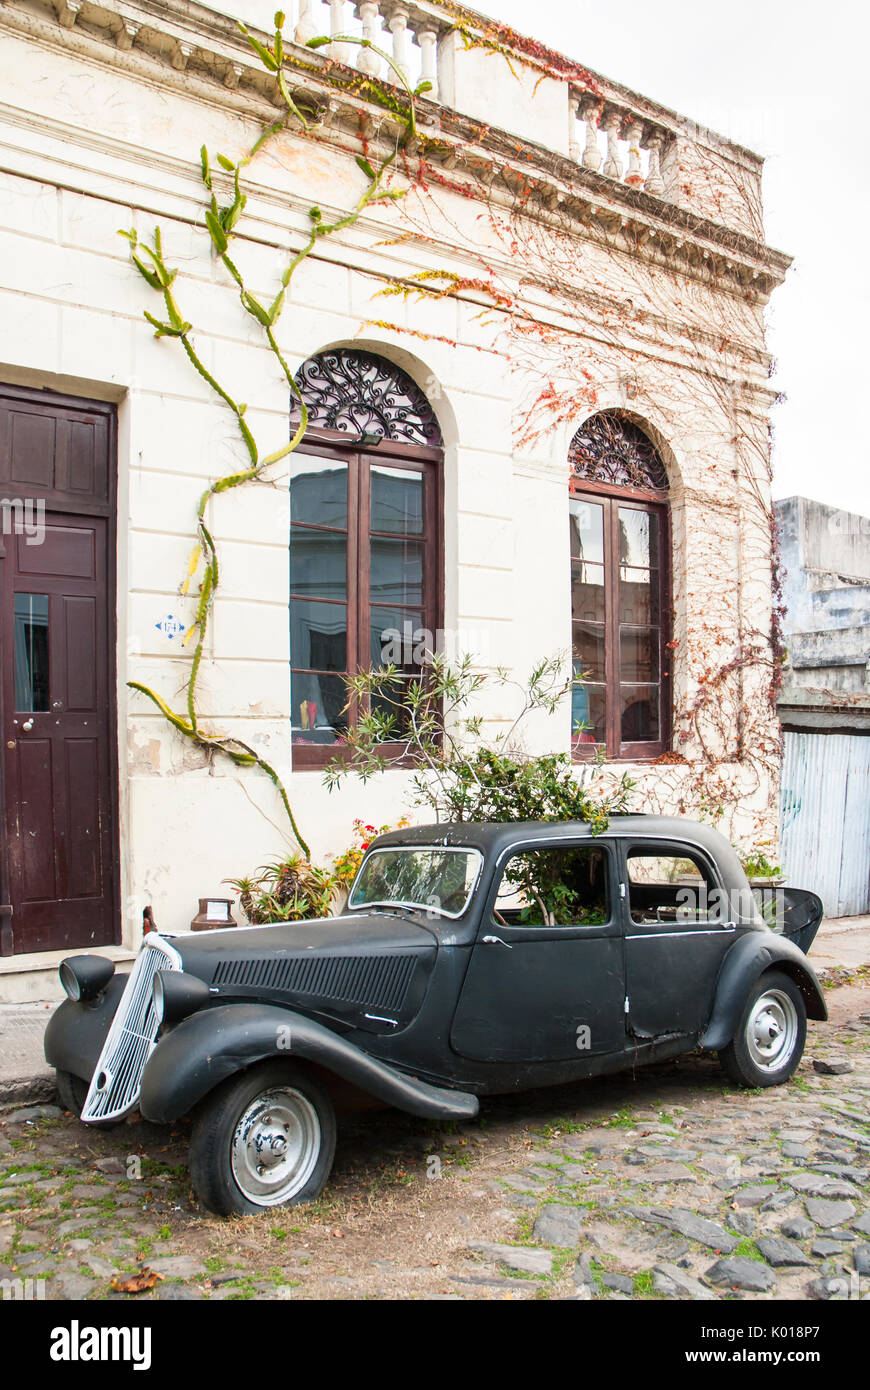 Old vintage car in the cobbled streets of Colonia del Sacramento ...